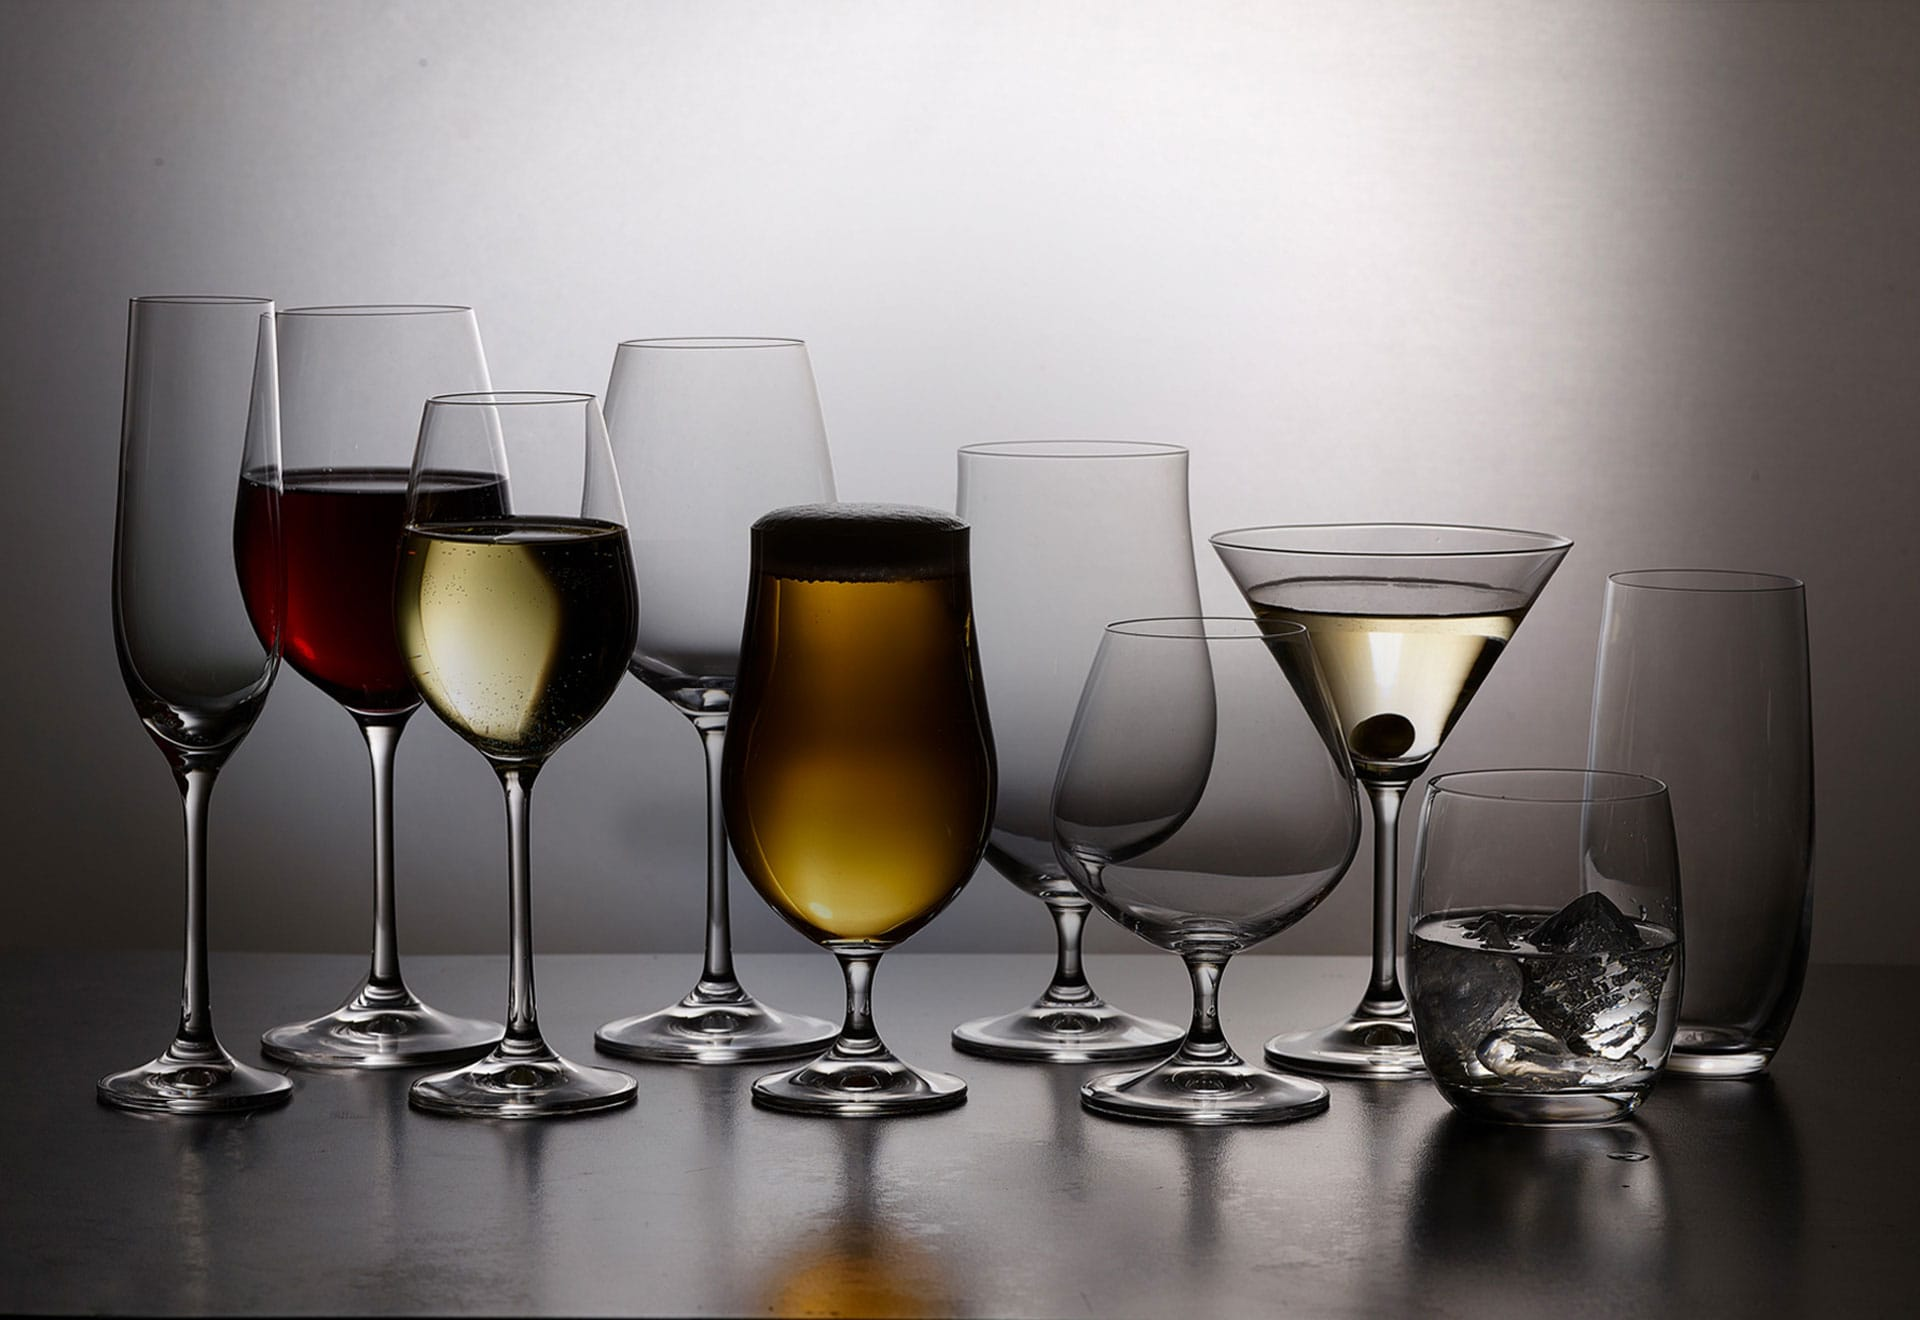 Glassware-Glasses-Hampshire